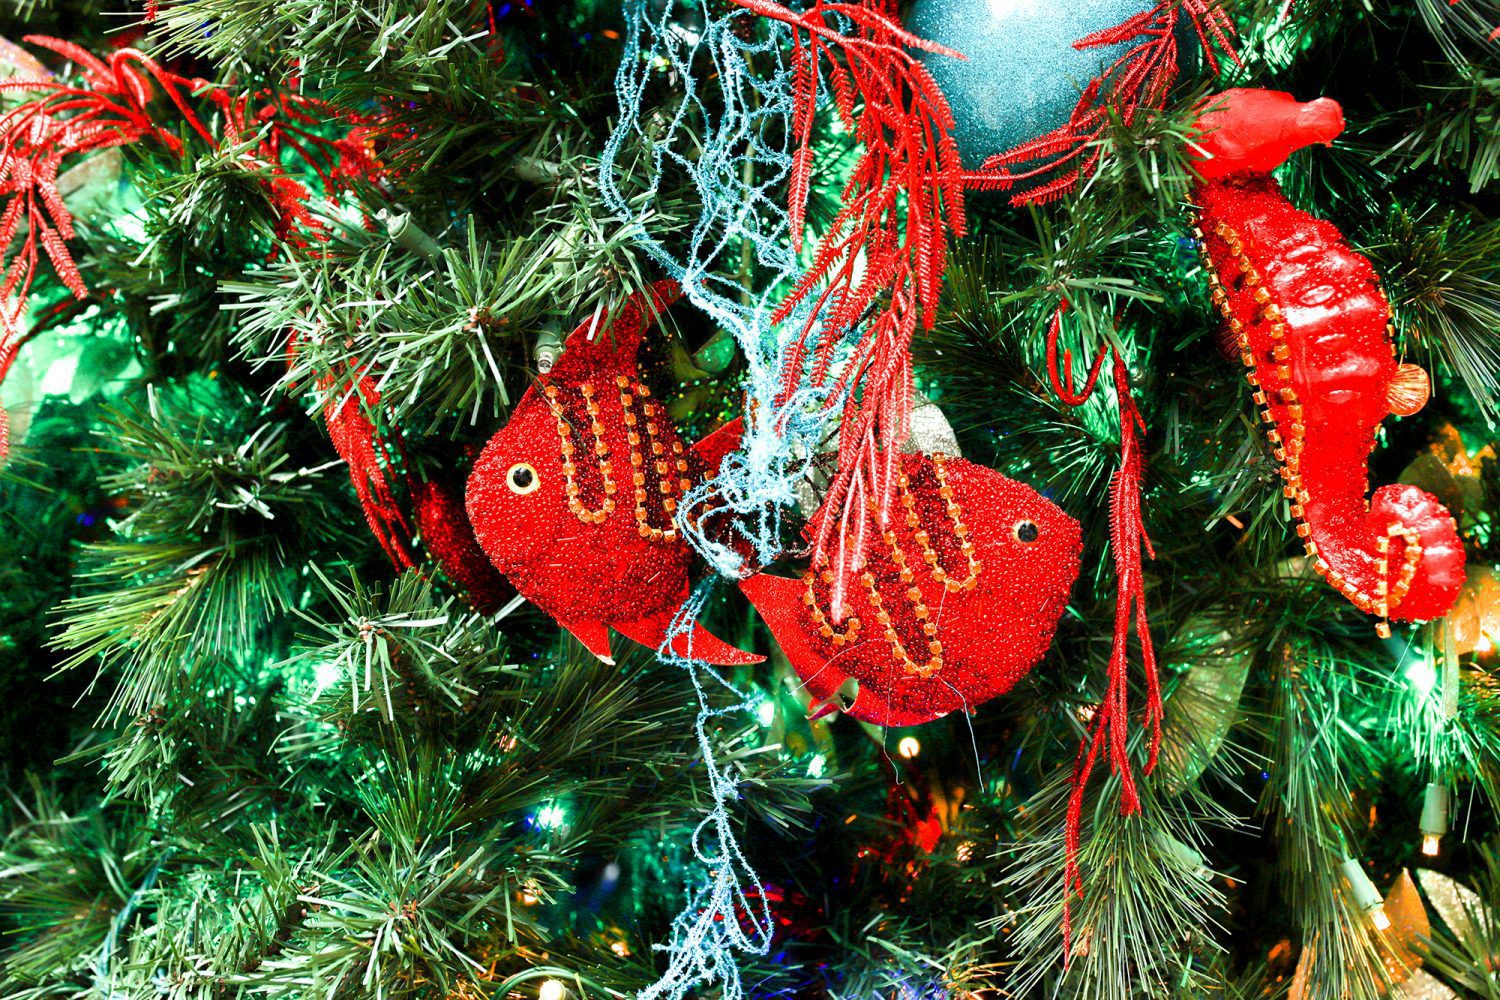 Red Fish Ornaments on a Christmas Tree